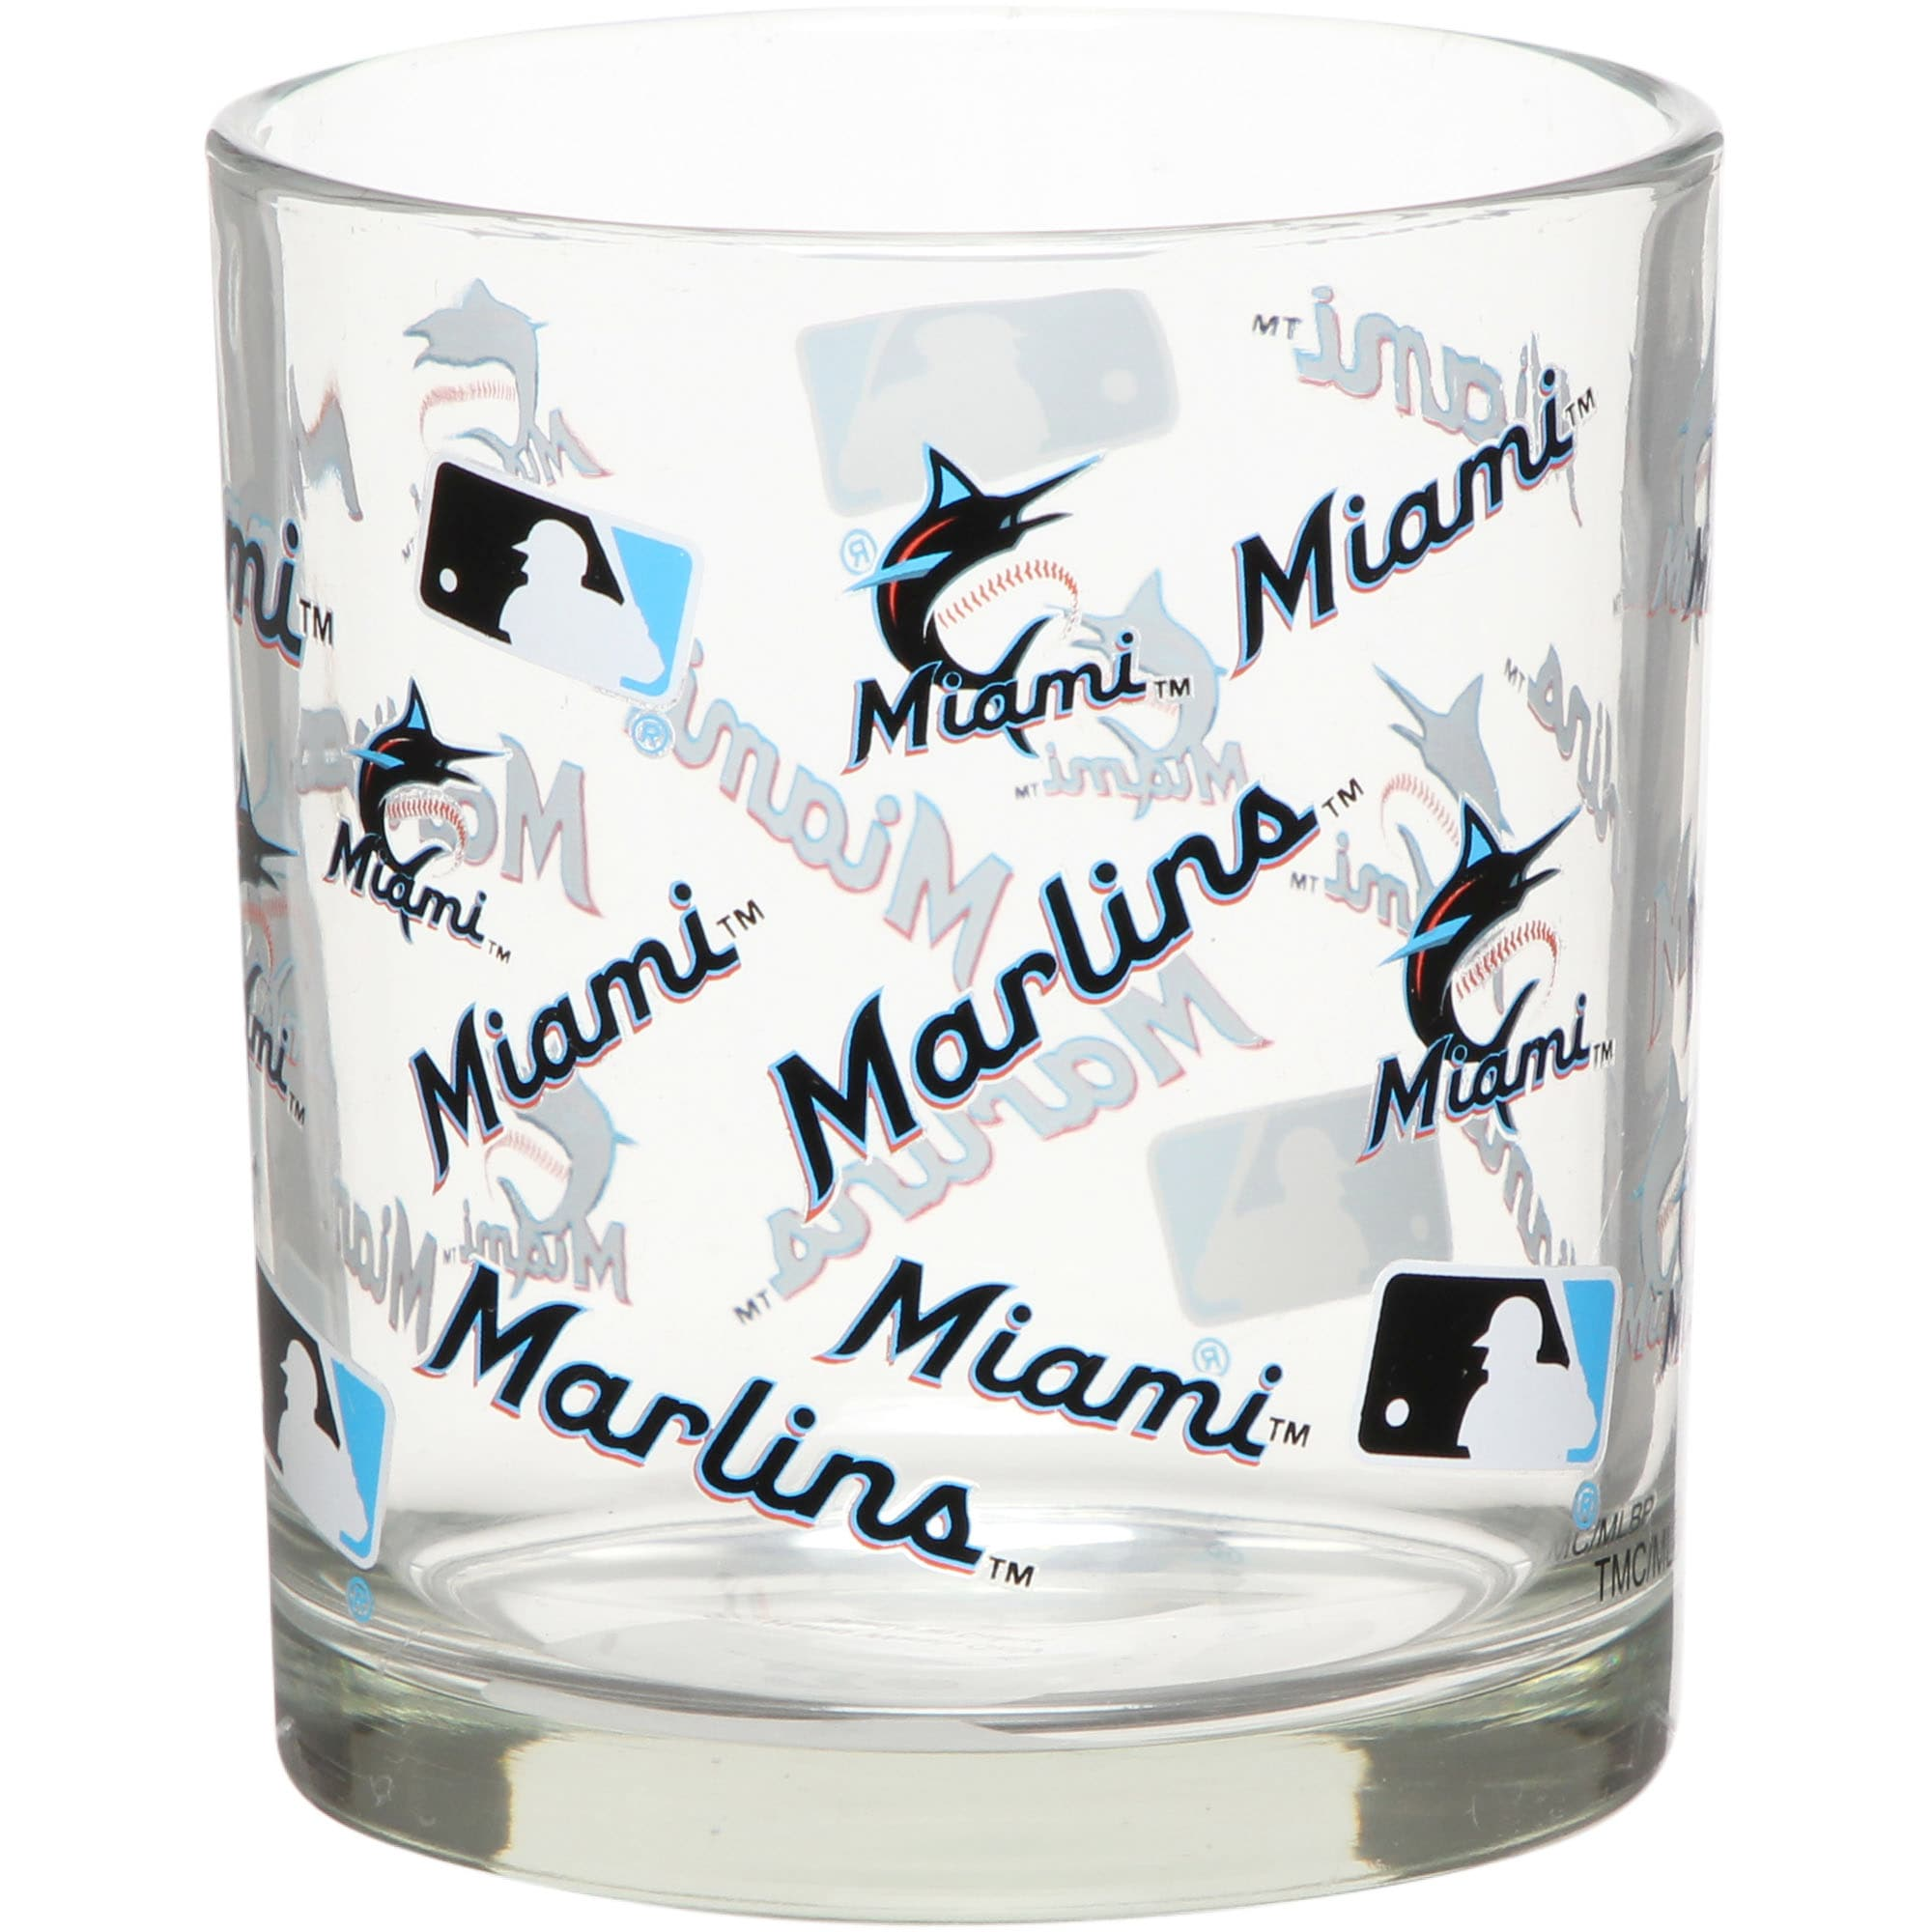 Miami Marlins Full Wrap Rocks Glass